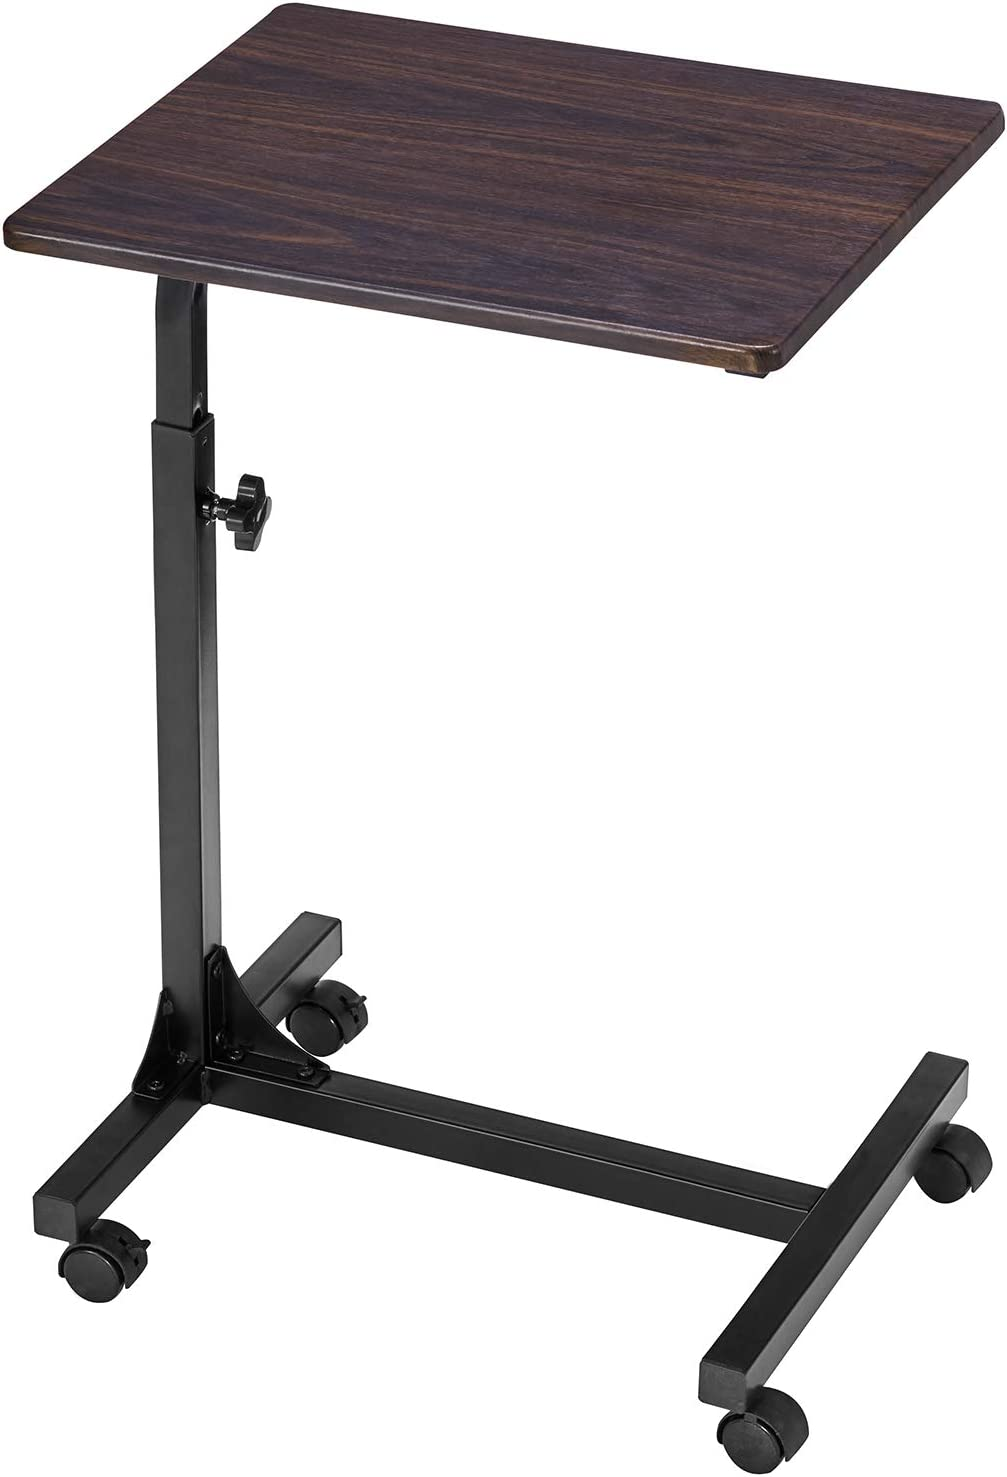 Coavas Over Bed Table C Side Rolling Table with Lockable Wheels Medical Portable Notebook Laptop Desk 3 Adjustment Levels TV Tray Table for Eating Breakfast, Walnut (18.9 x 14.6 x 26.4-31.1 inch)